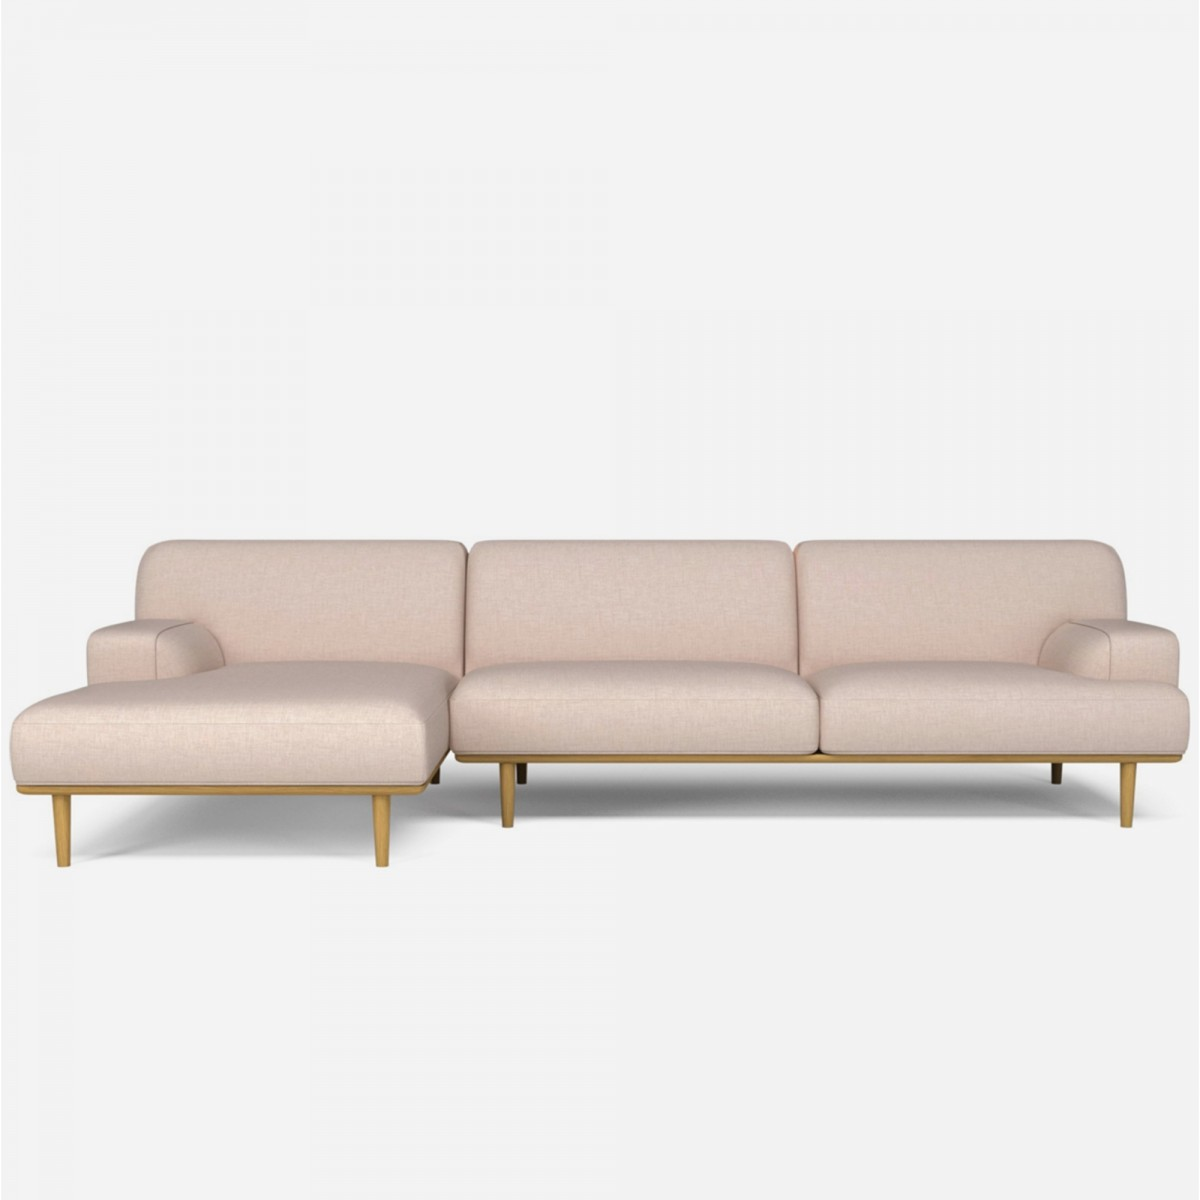 Madison with chaise longue bolia for Chaise longue interiores